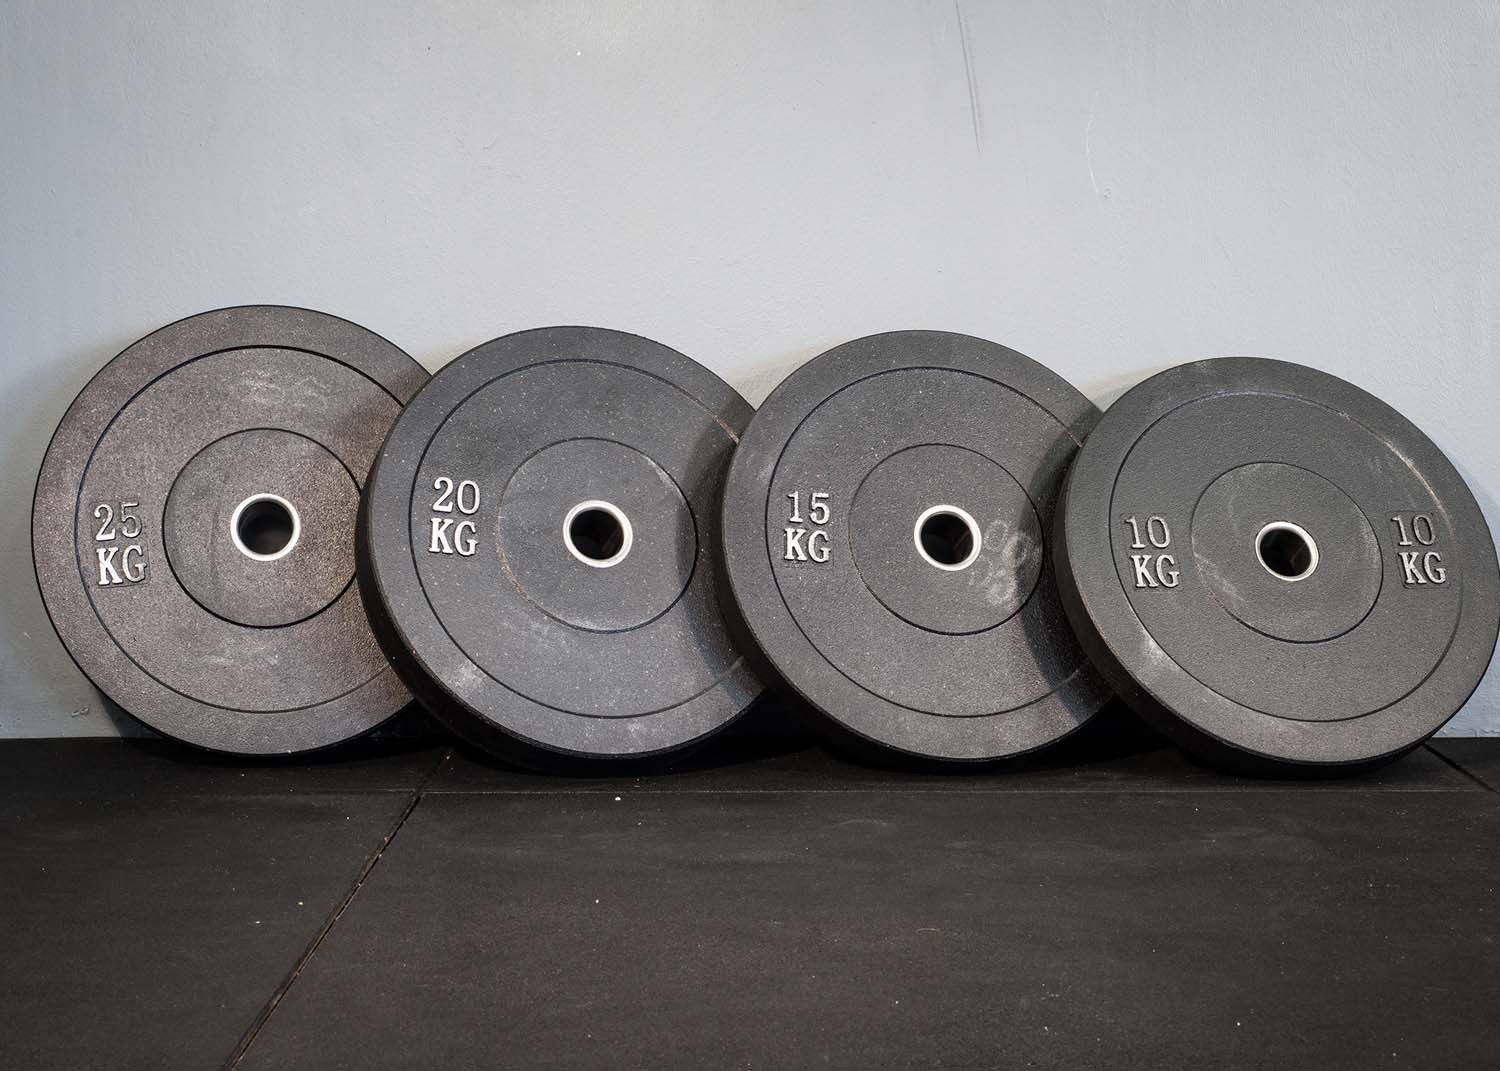 Bumper plates garage gym planner best home